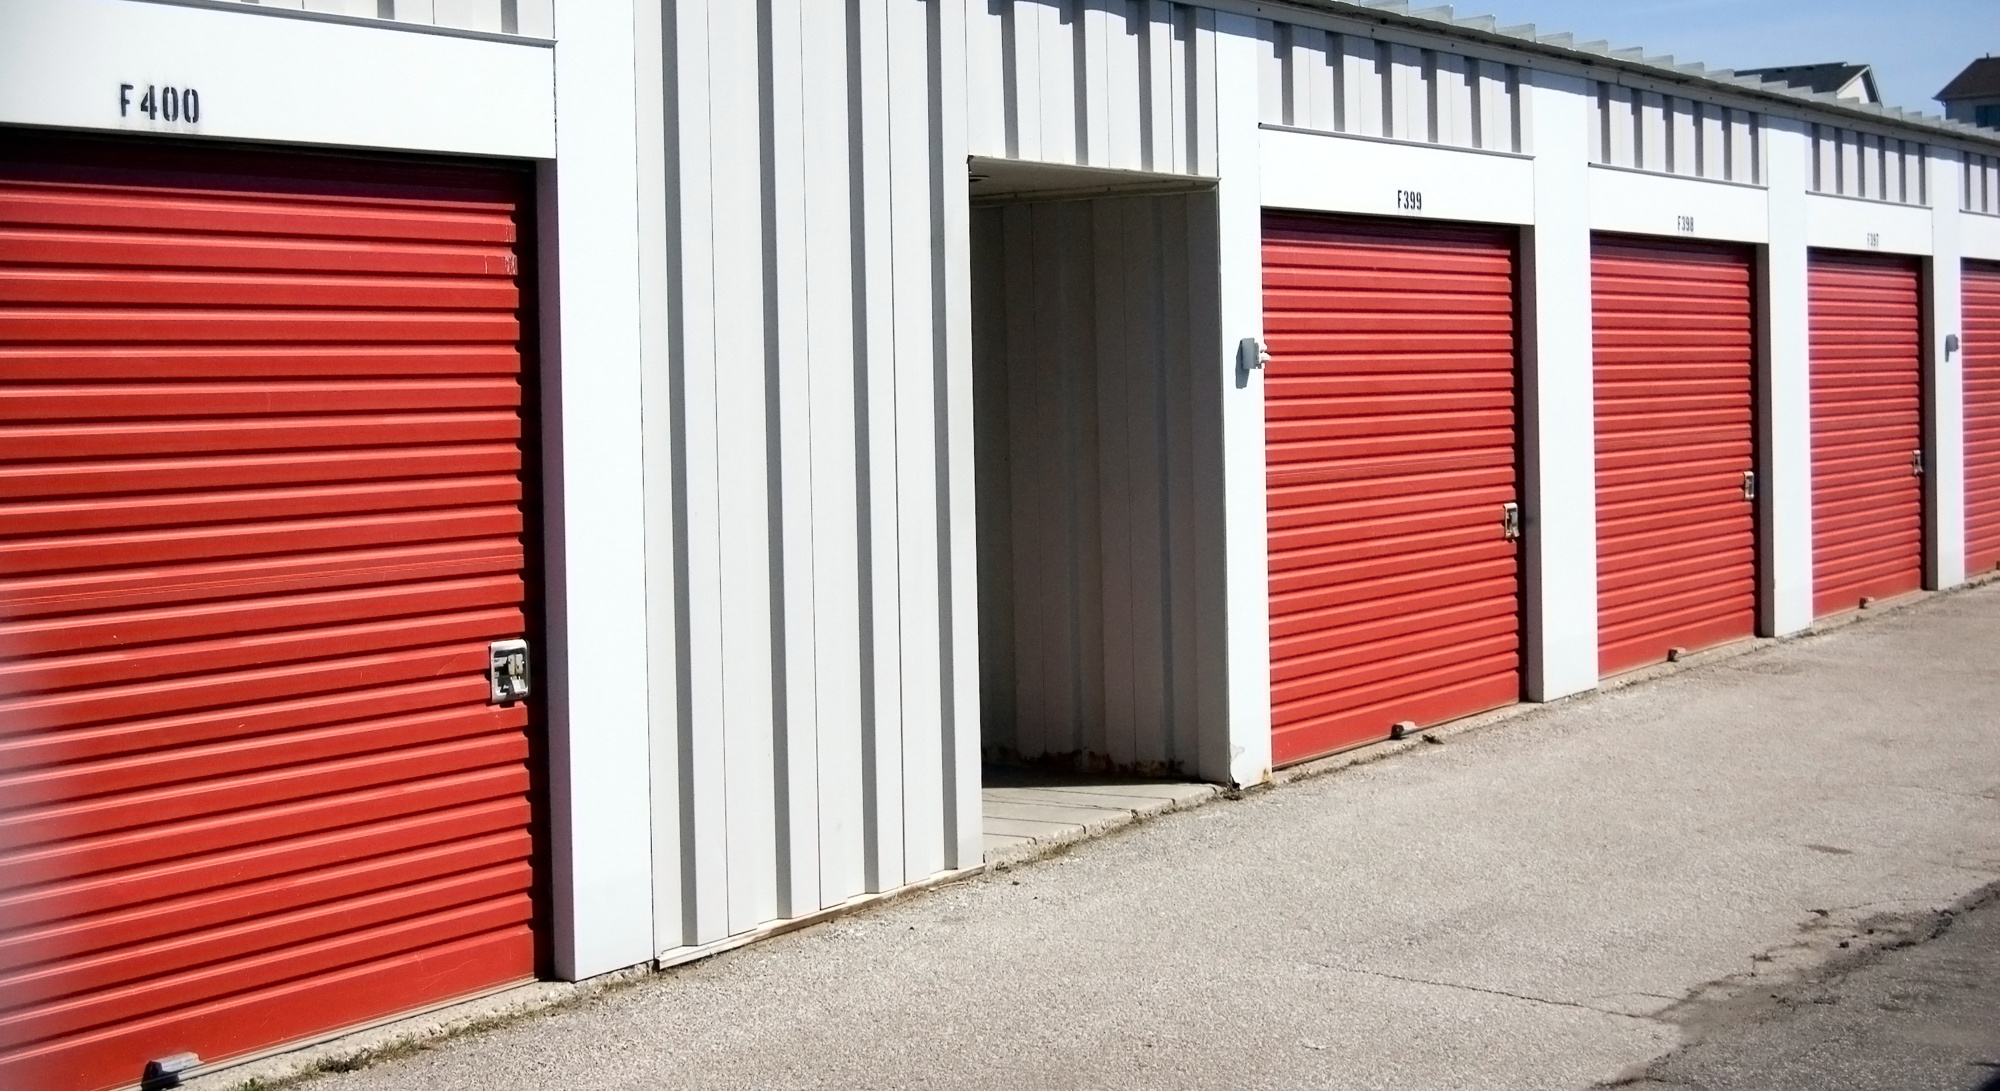 The most secure storage units in Christchurch